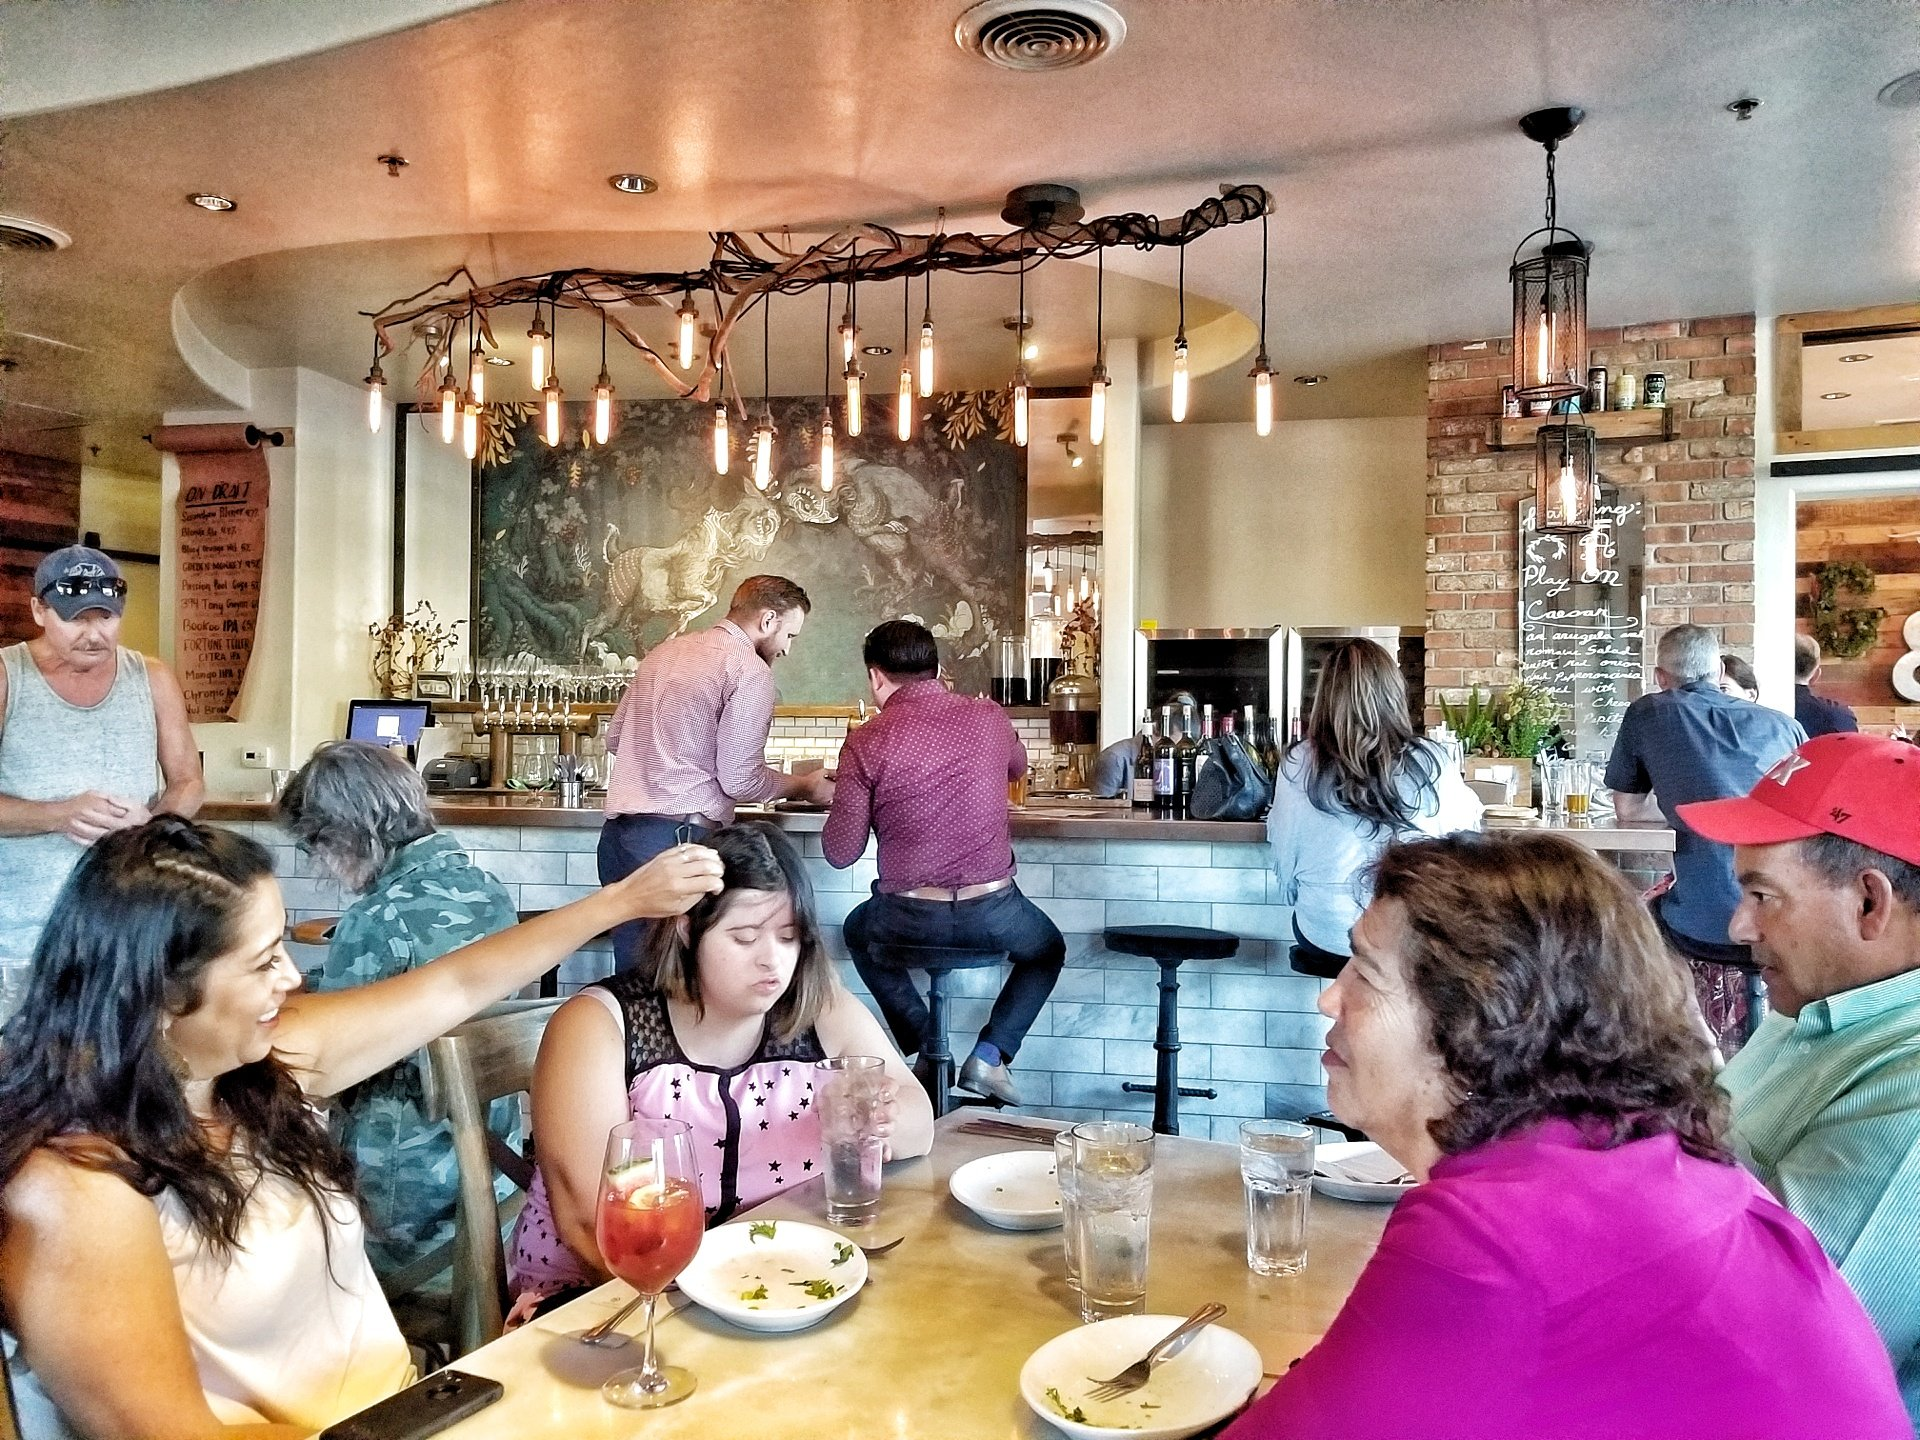 picture of people dining at The Goat & Vine in Old Town Temecula, CA